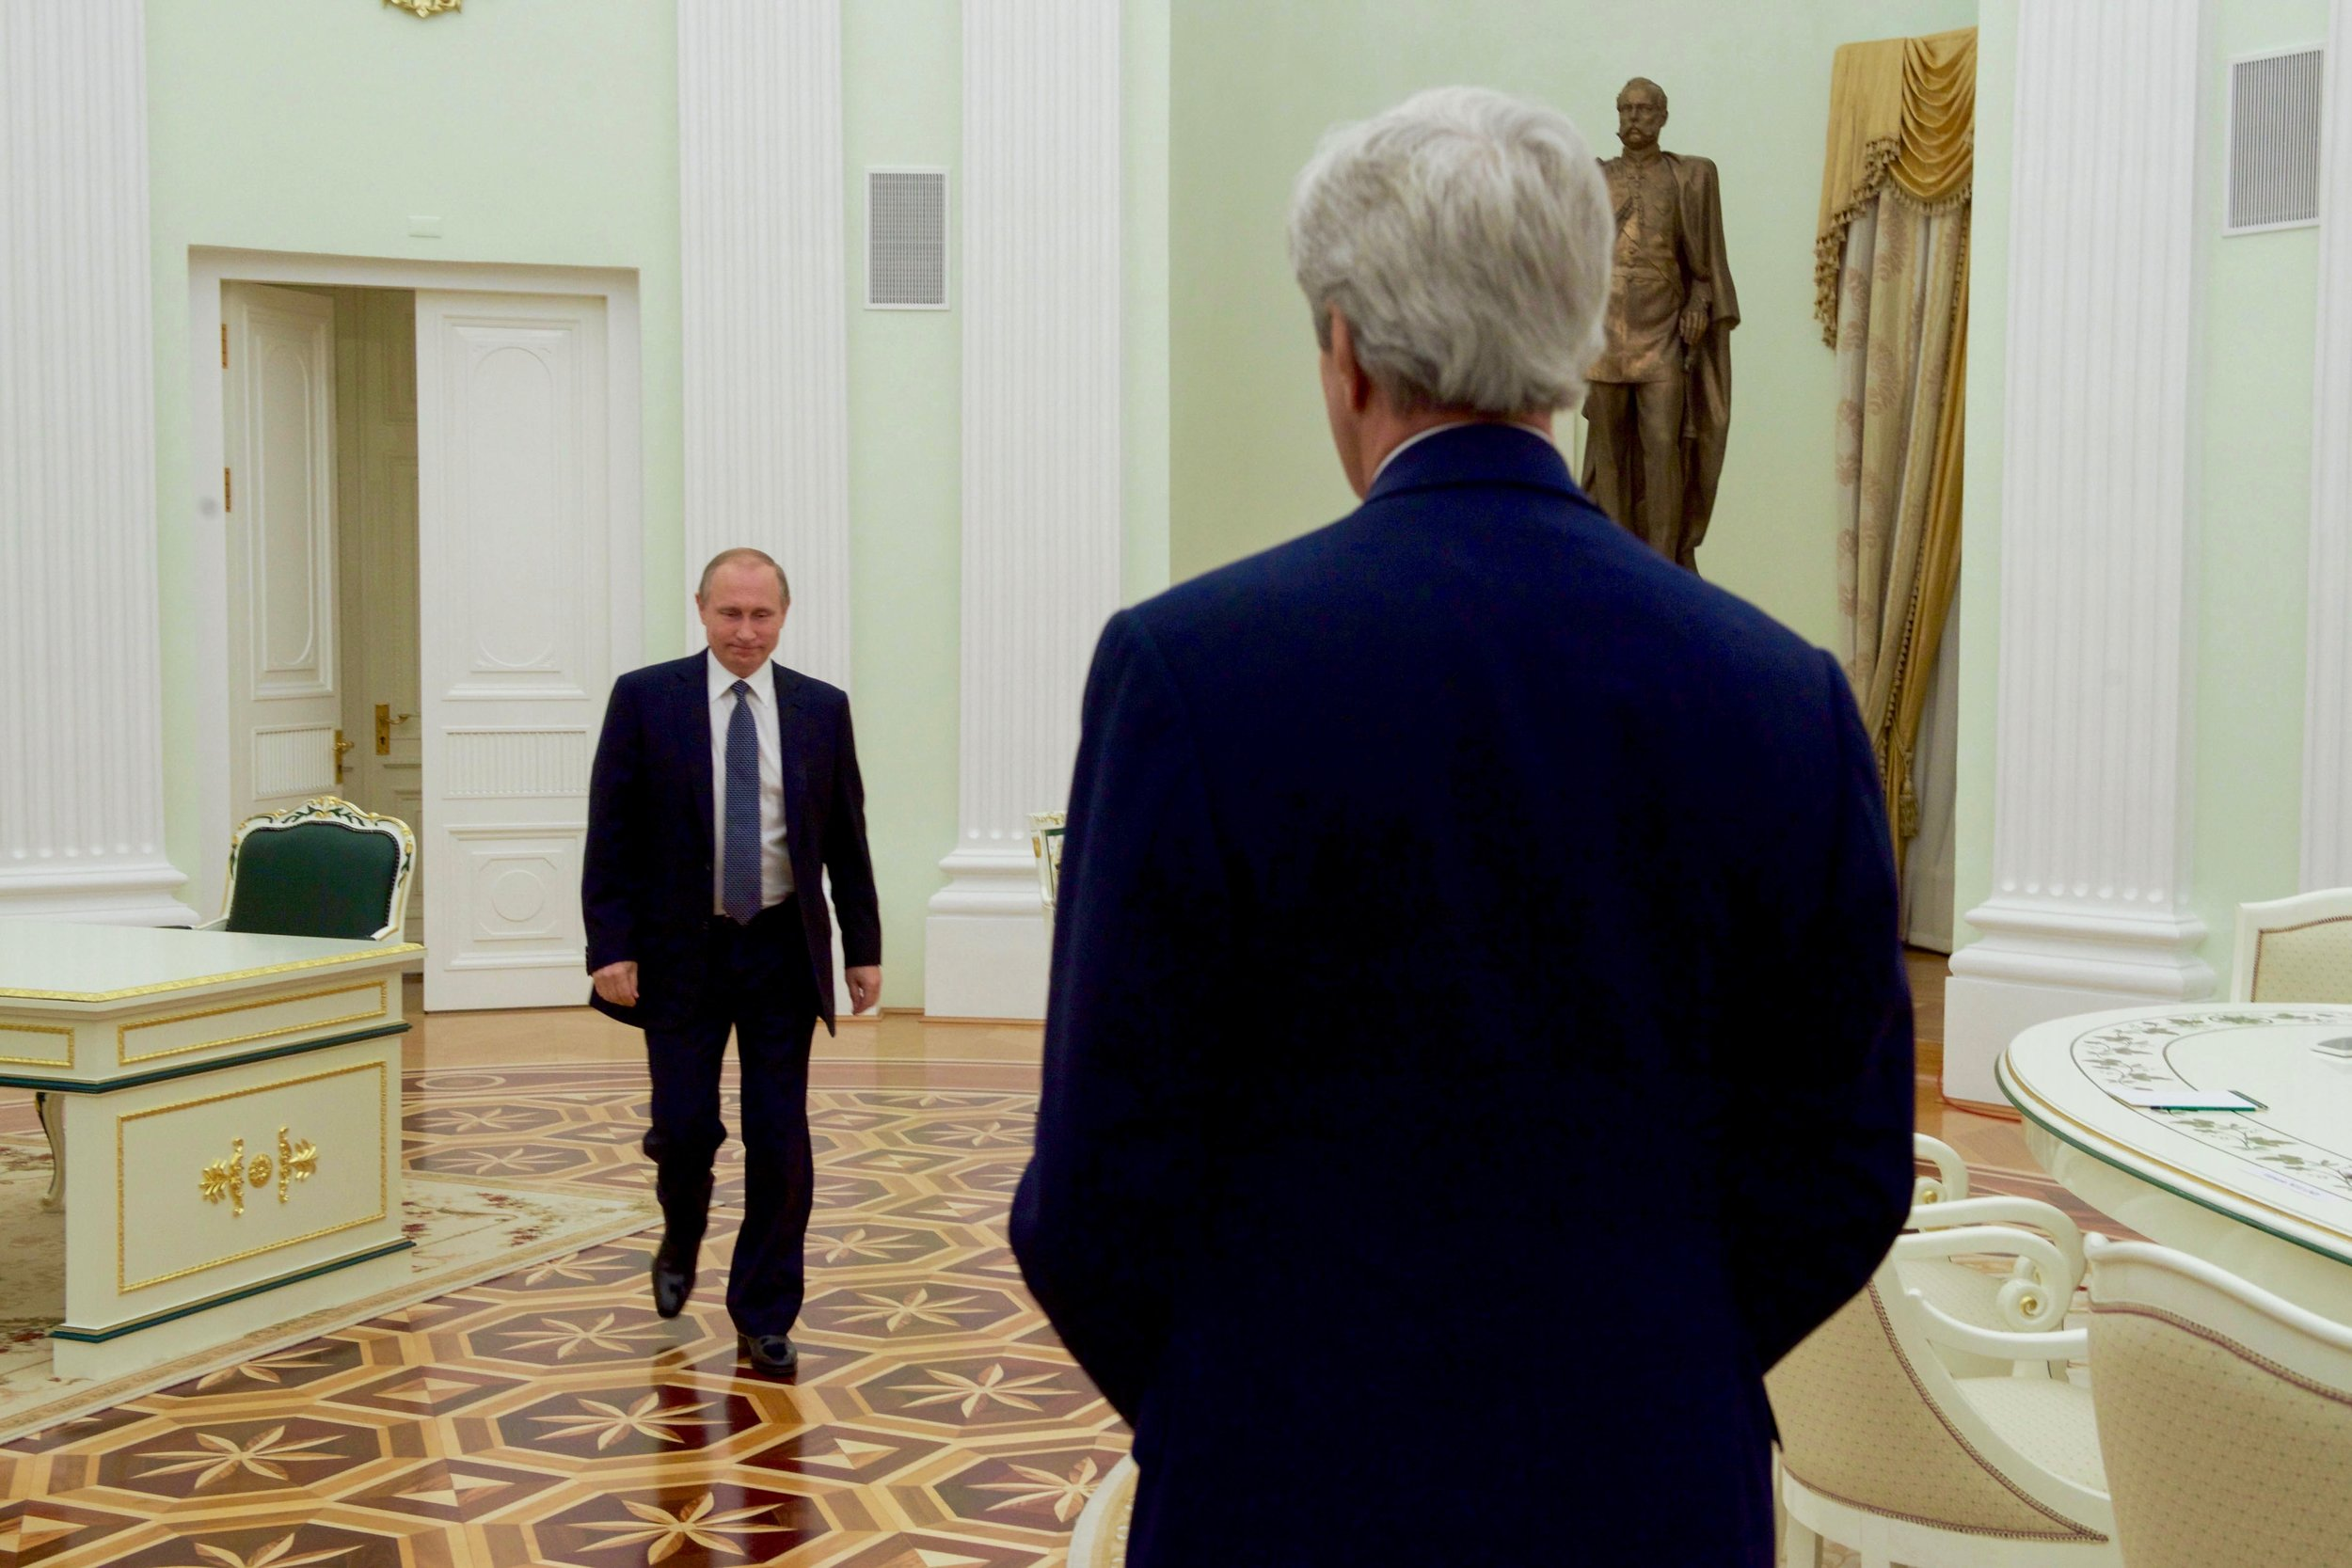 President Putin enters to greet Secretary Kerry - after keeping him waiting for hours.